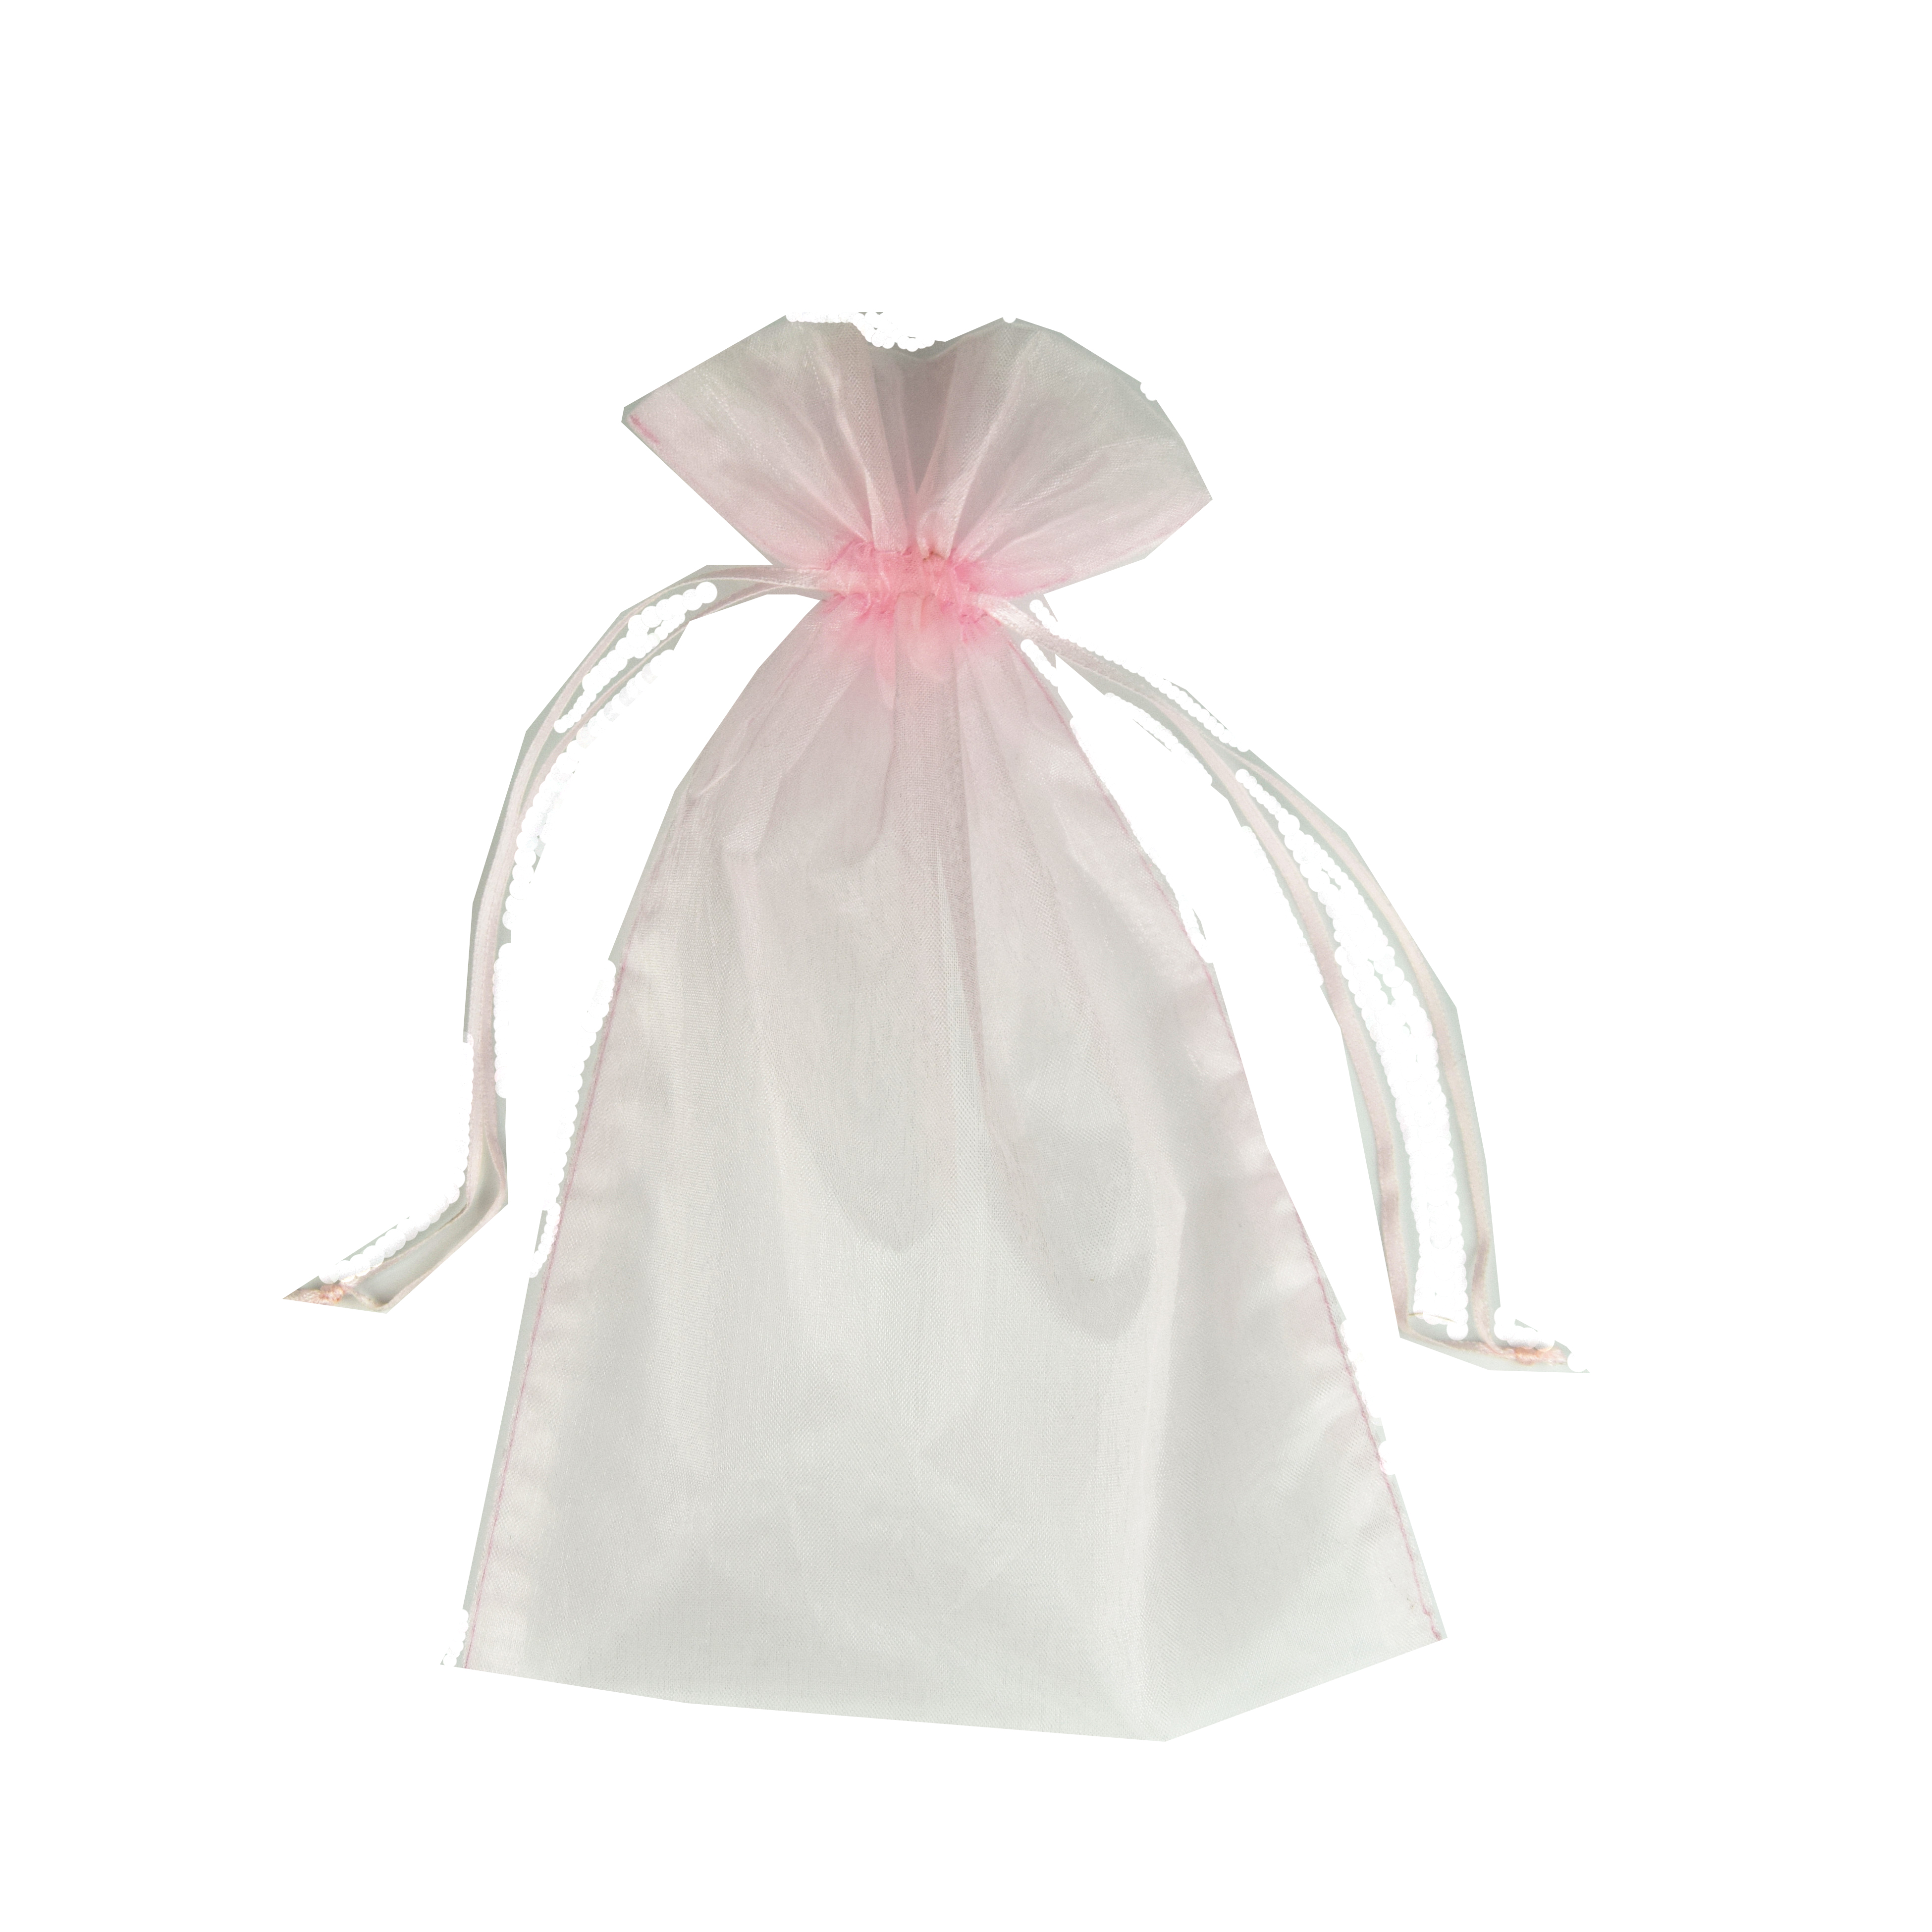 30x40cm light pink purple seed drawstring organza pouch bag